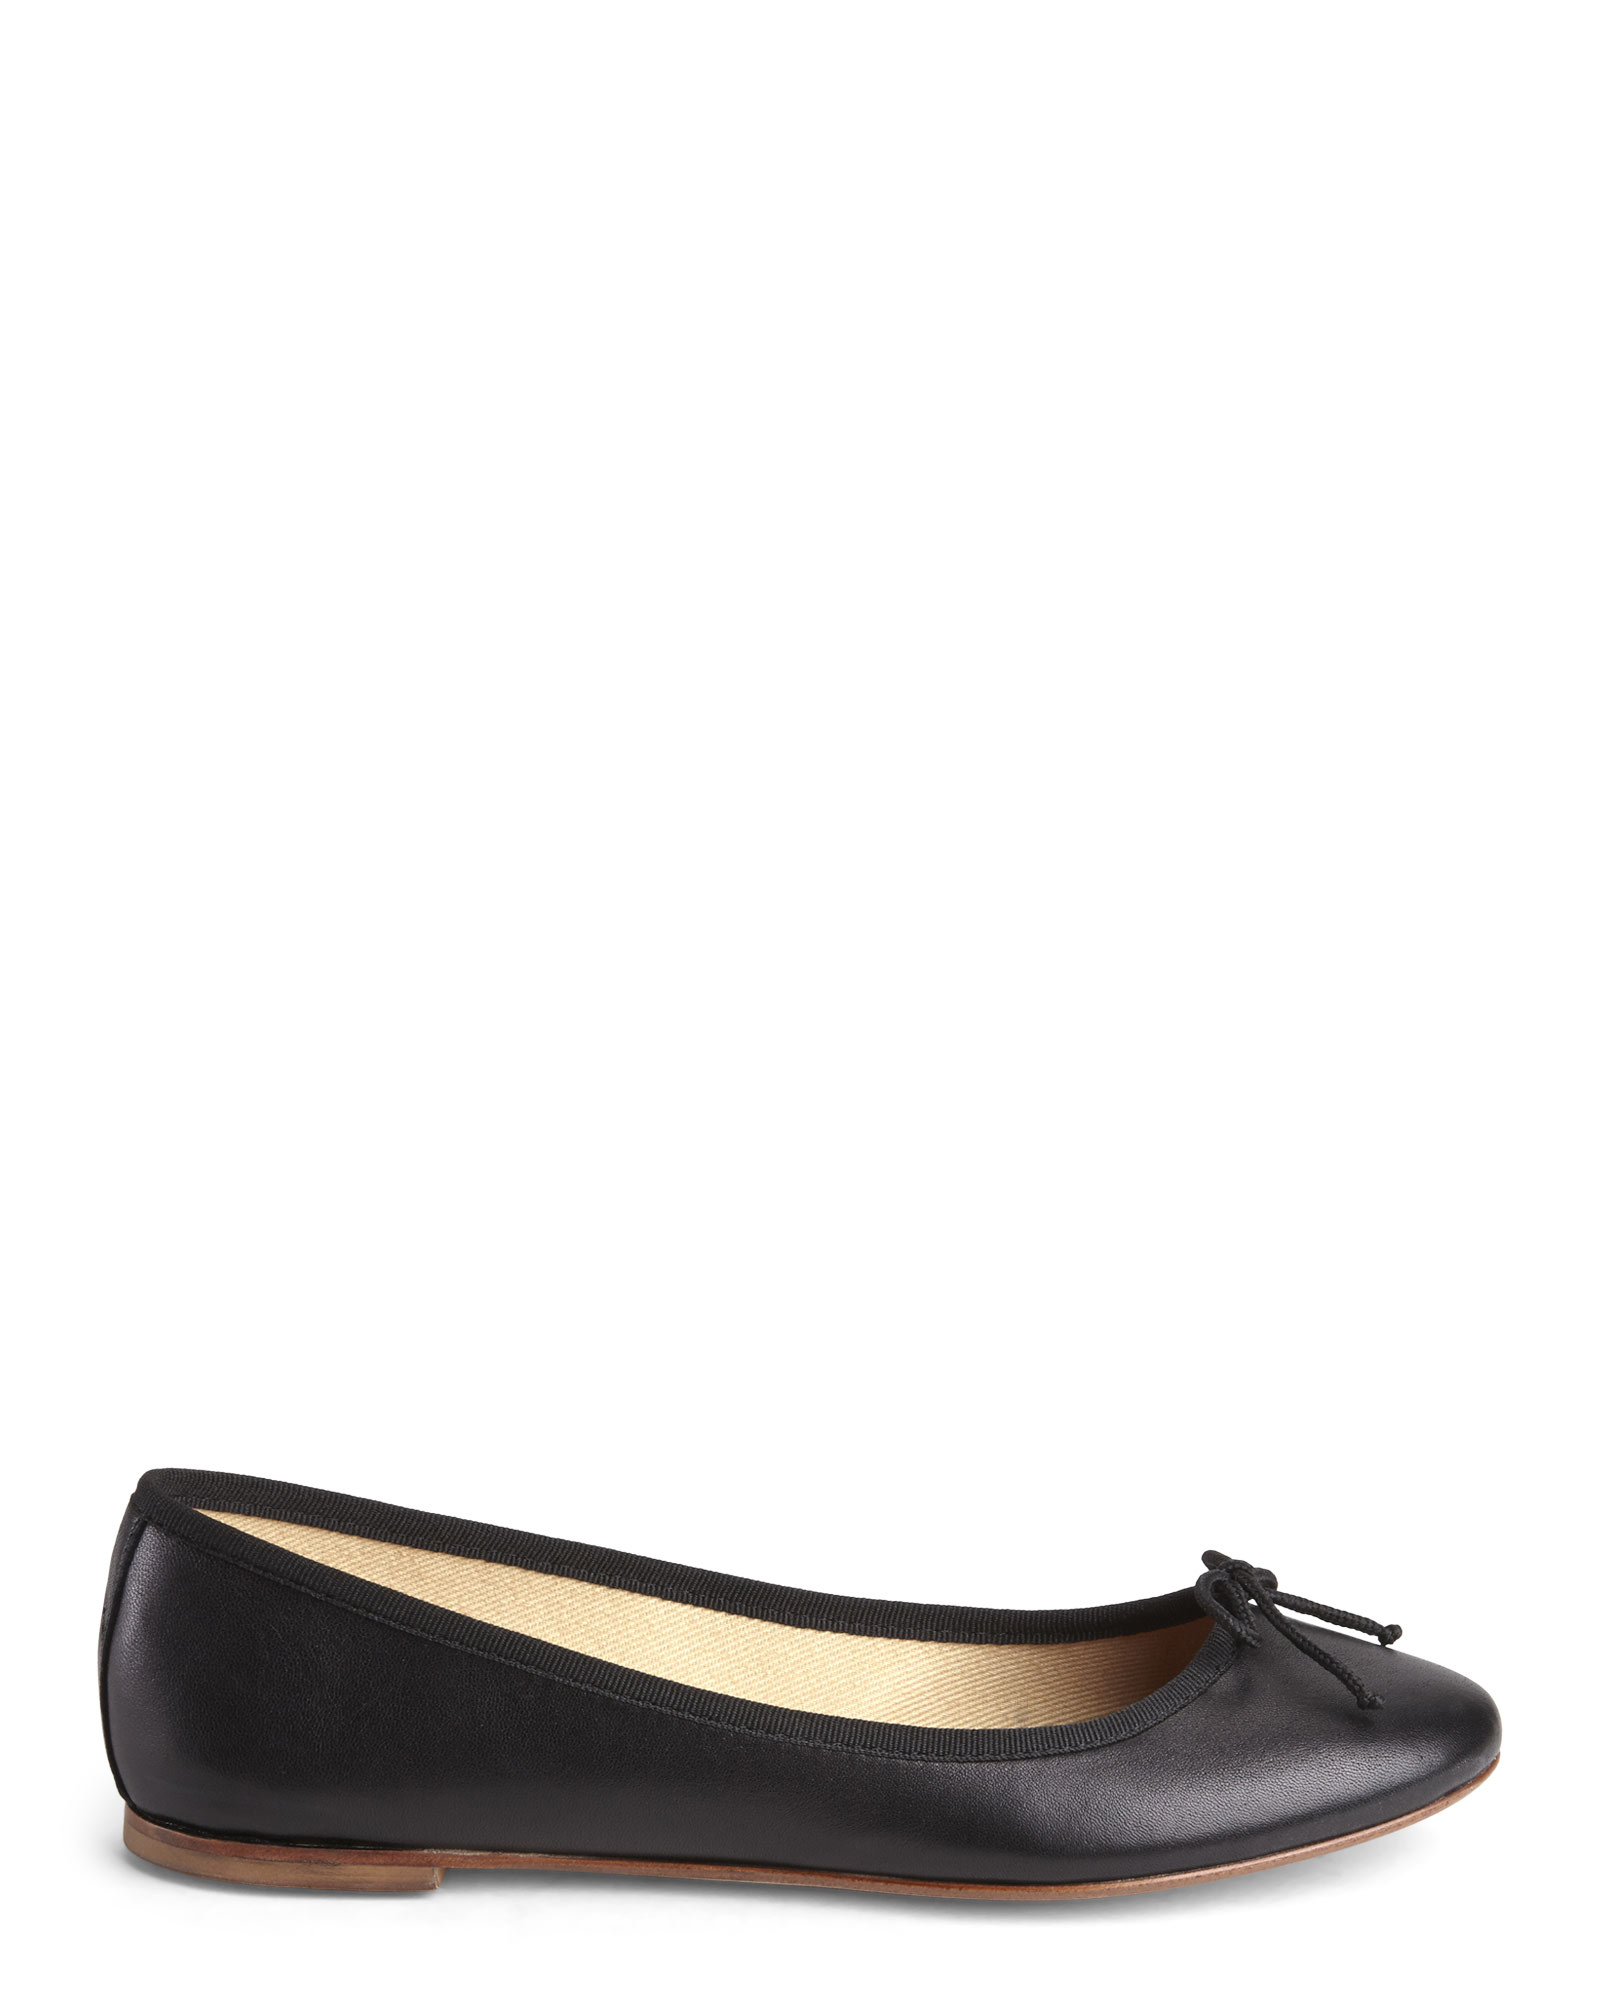 L Autre Chose Leather Ballet Flats